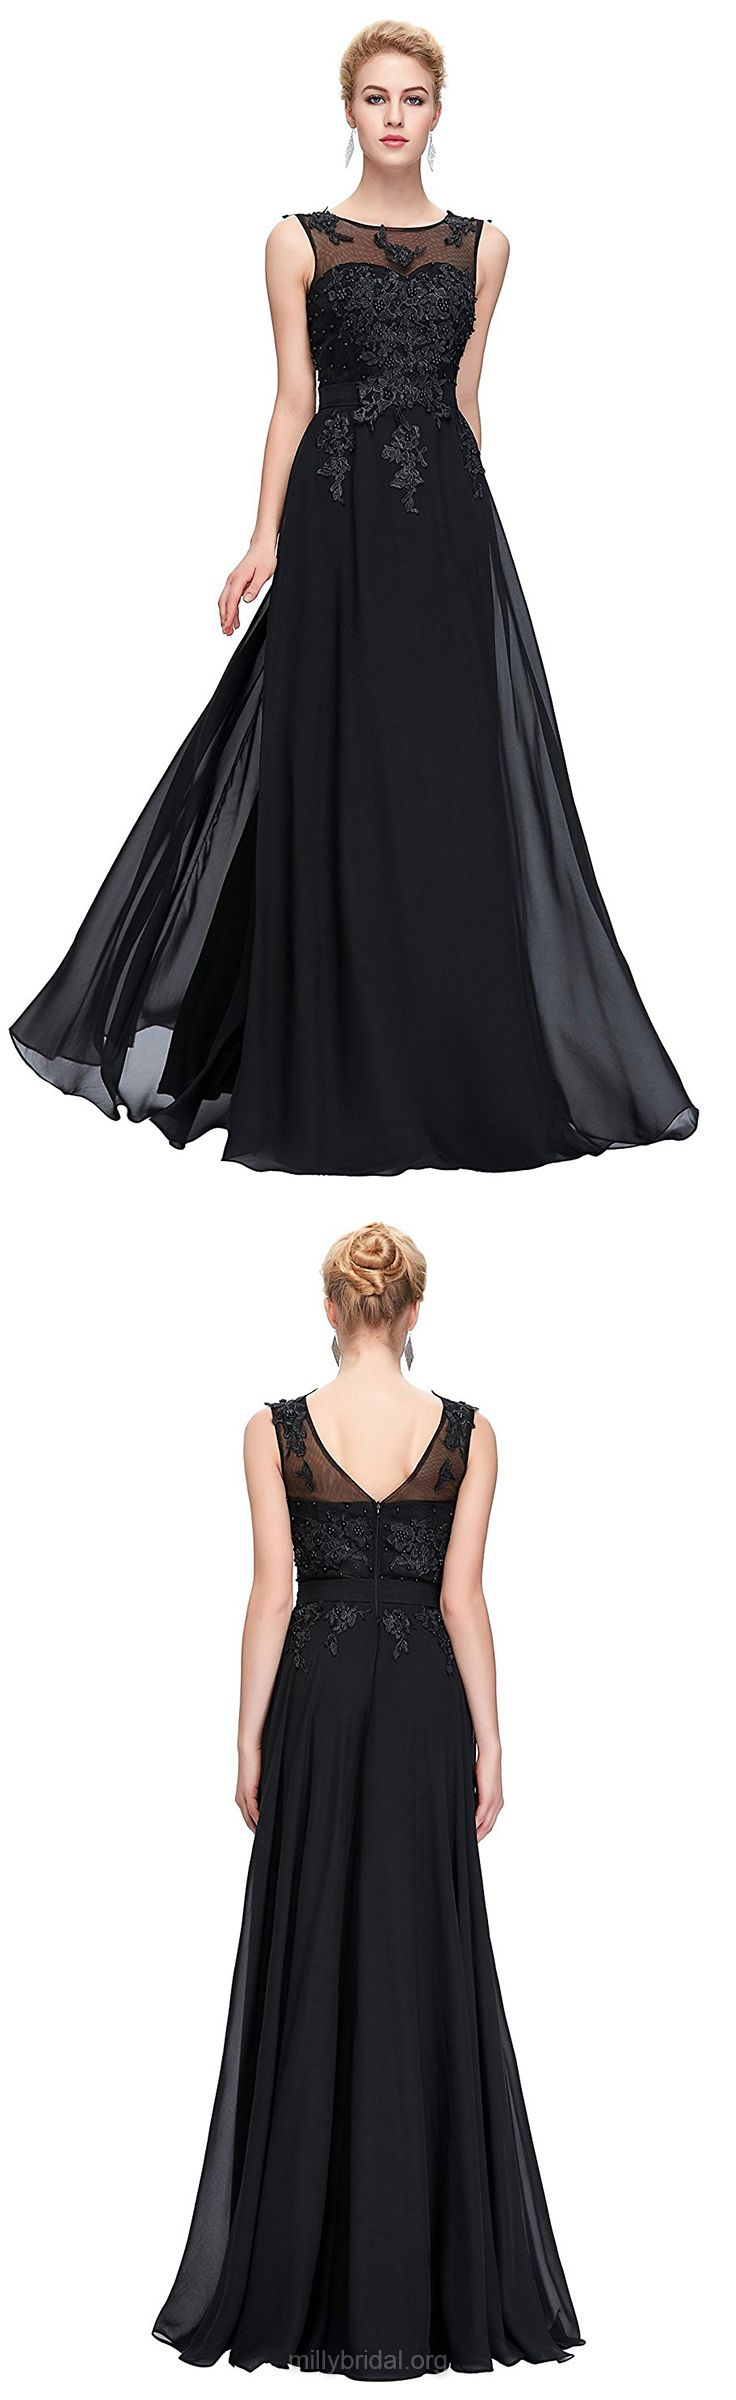 Black Prom Dresses, Long Prom Dresses, 2018 Prom Dresses A-line Scoop Neck, Chiffon Prom Dresses Tulle with Sashes / Ribbons Modest